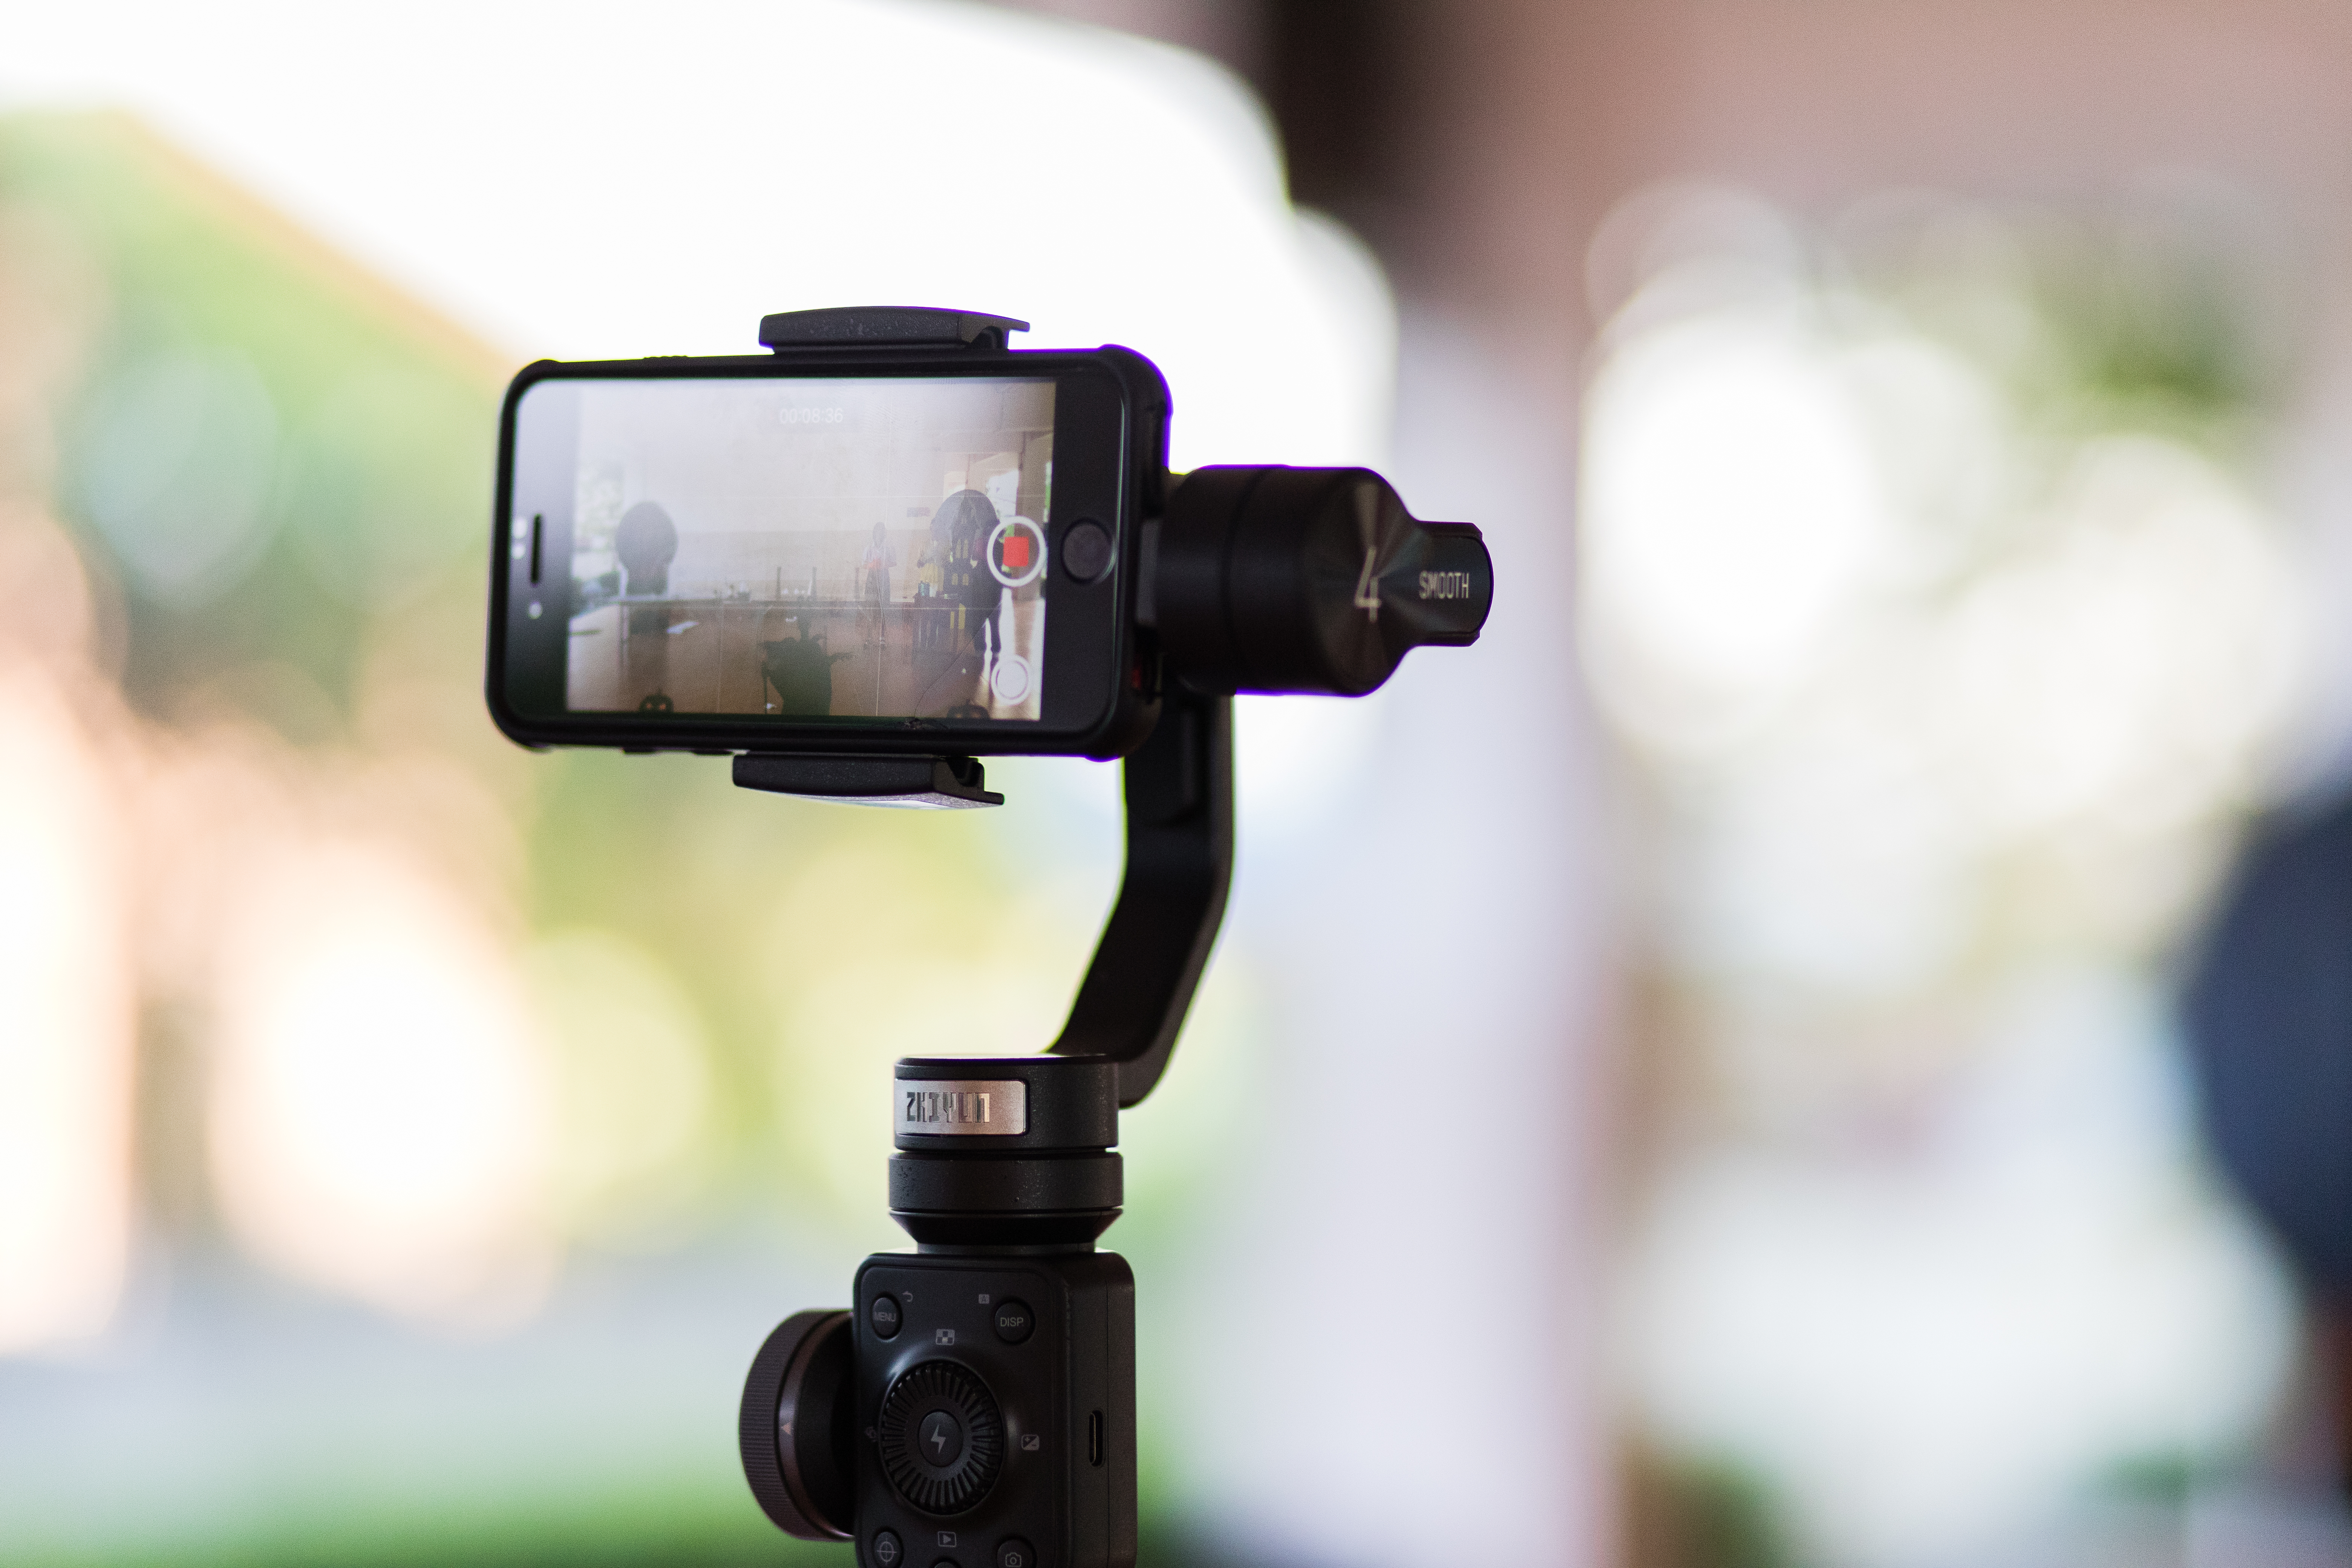 Iphone video production